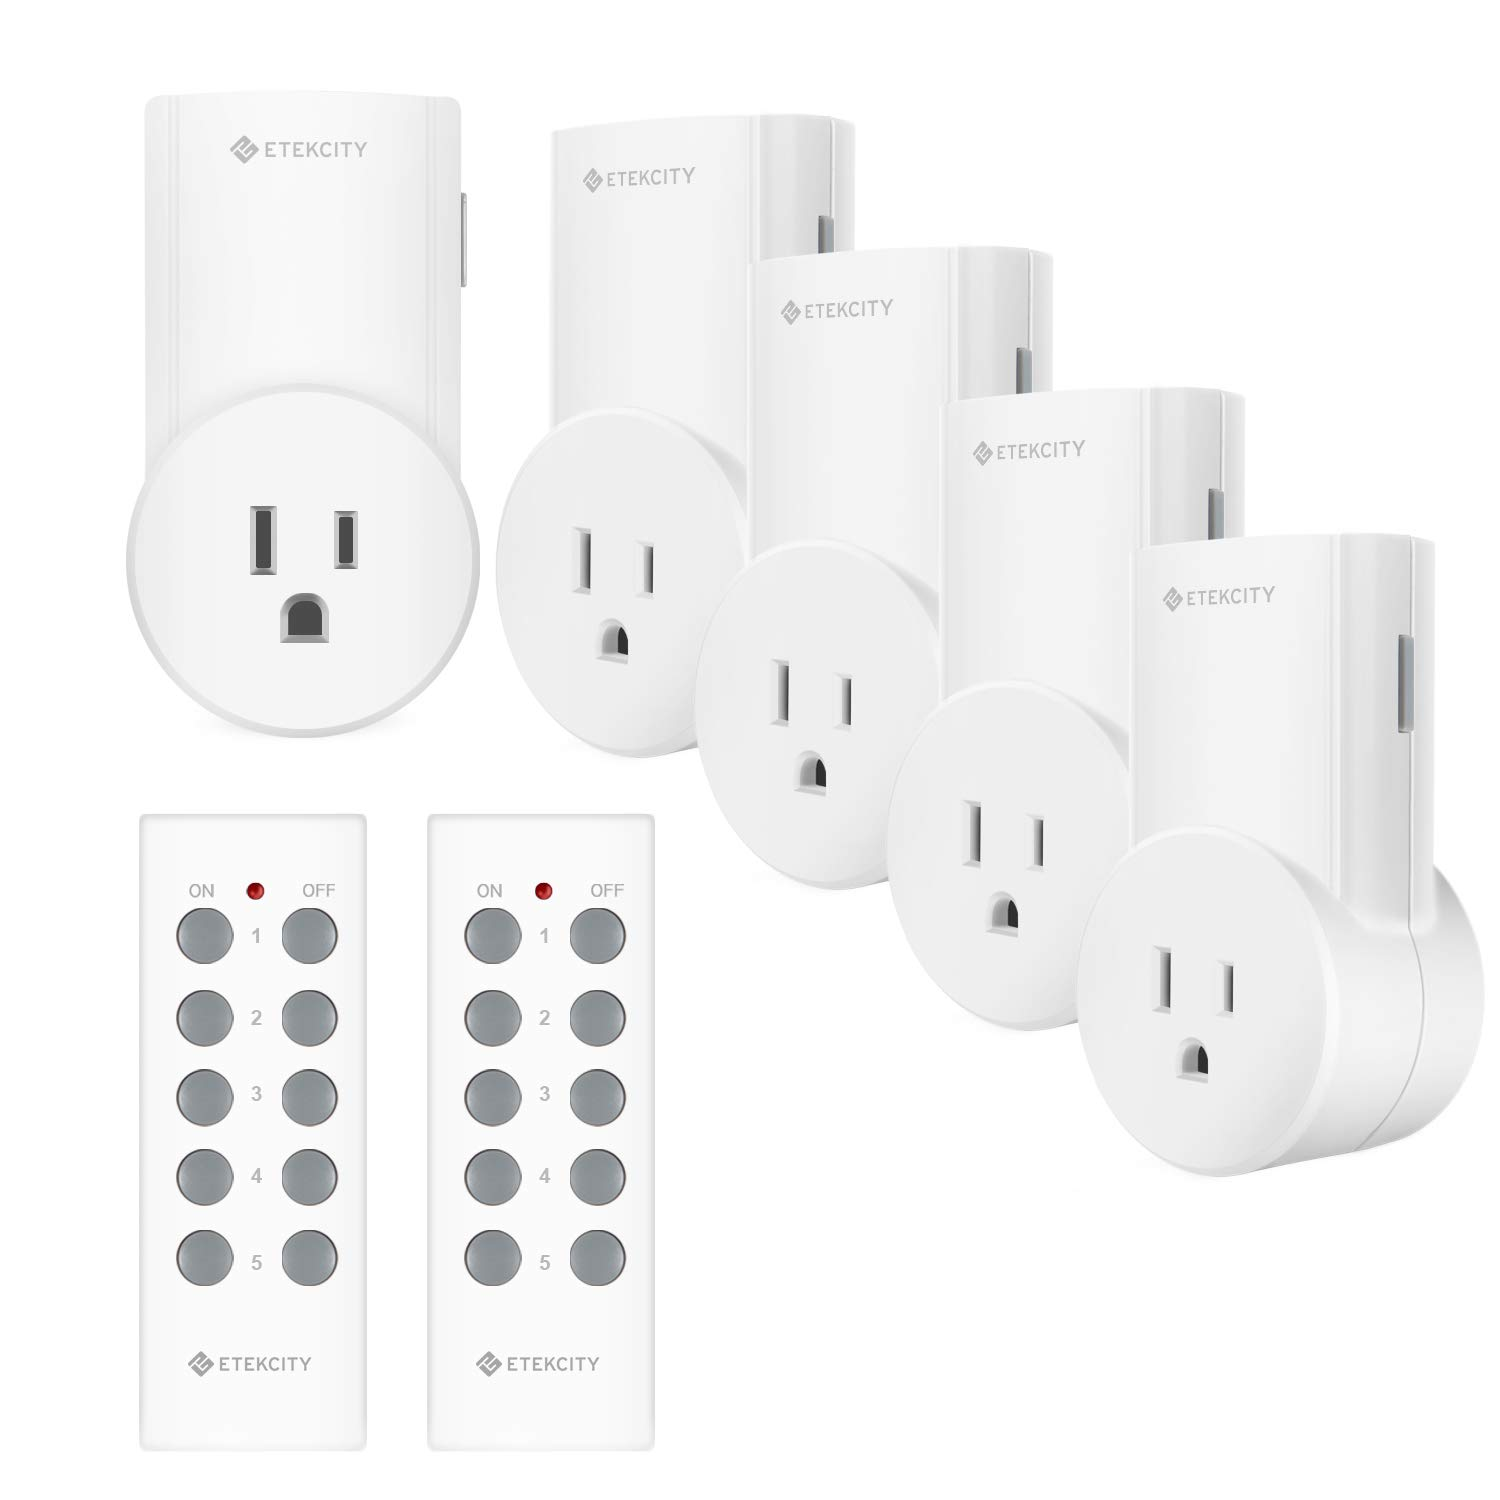 Etekcity Wireless Remote Control Outlet Light Switch for Lights, Lamps, Christmas Decorations, Plug and Go, Up to 100 ft. Range, FCC, ETL Listed, White (Learning Code, 5Rx-2Tx) by Etekcity